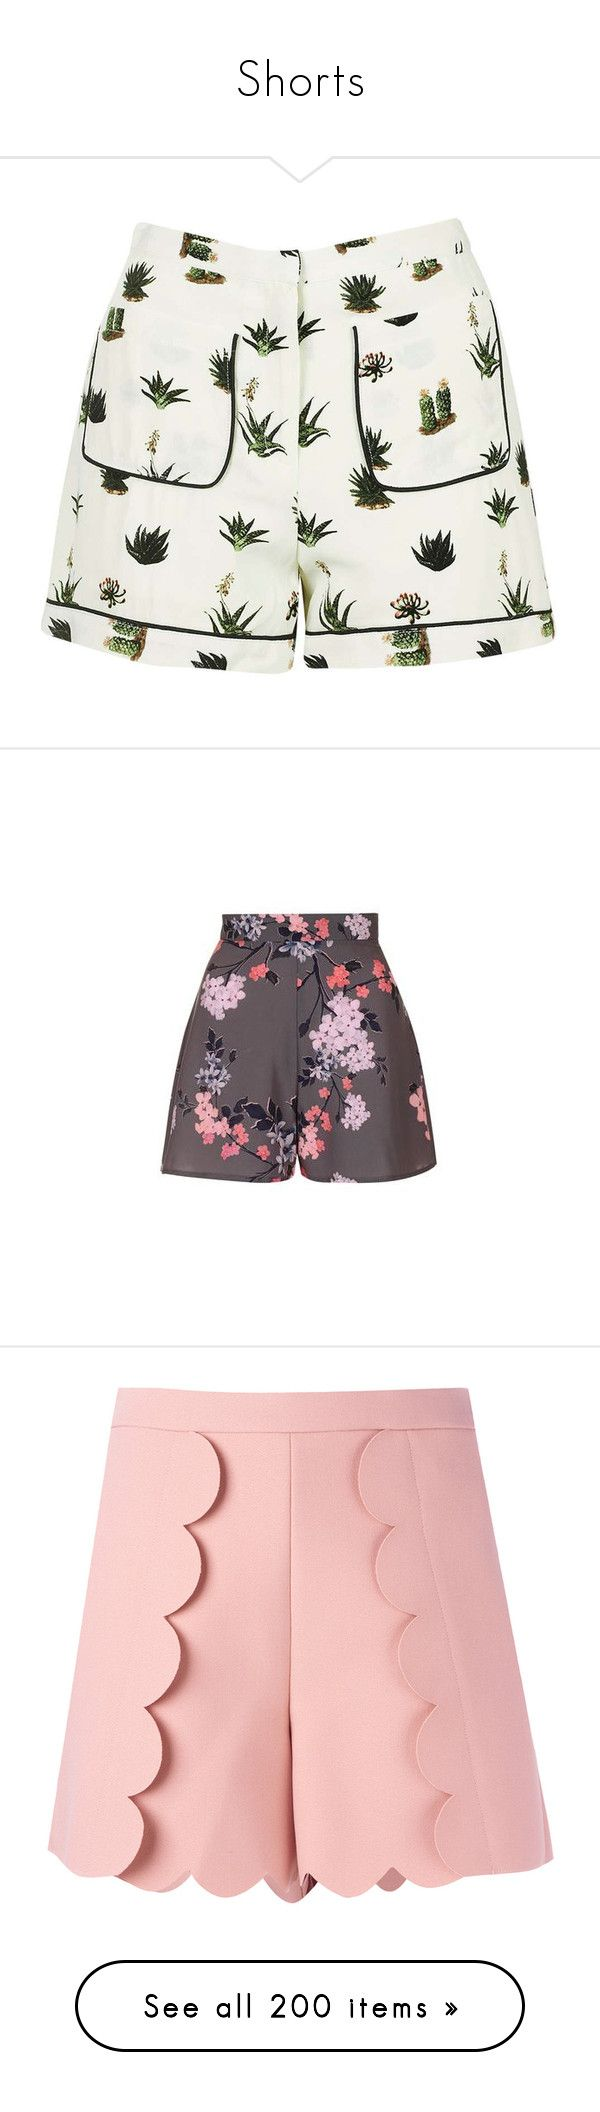 """Shorts"" by happilyjynxed on Polyvore featuring shorts, bottoms, short, topshop, pants, cream shorts, short shorts, topshop shorts, petite shorts and rayon shorts"